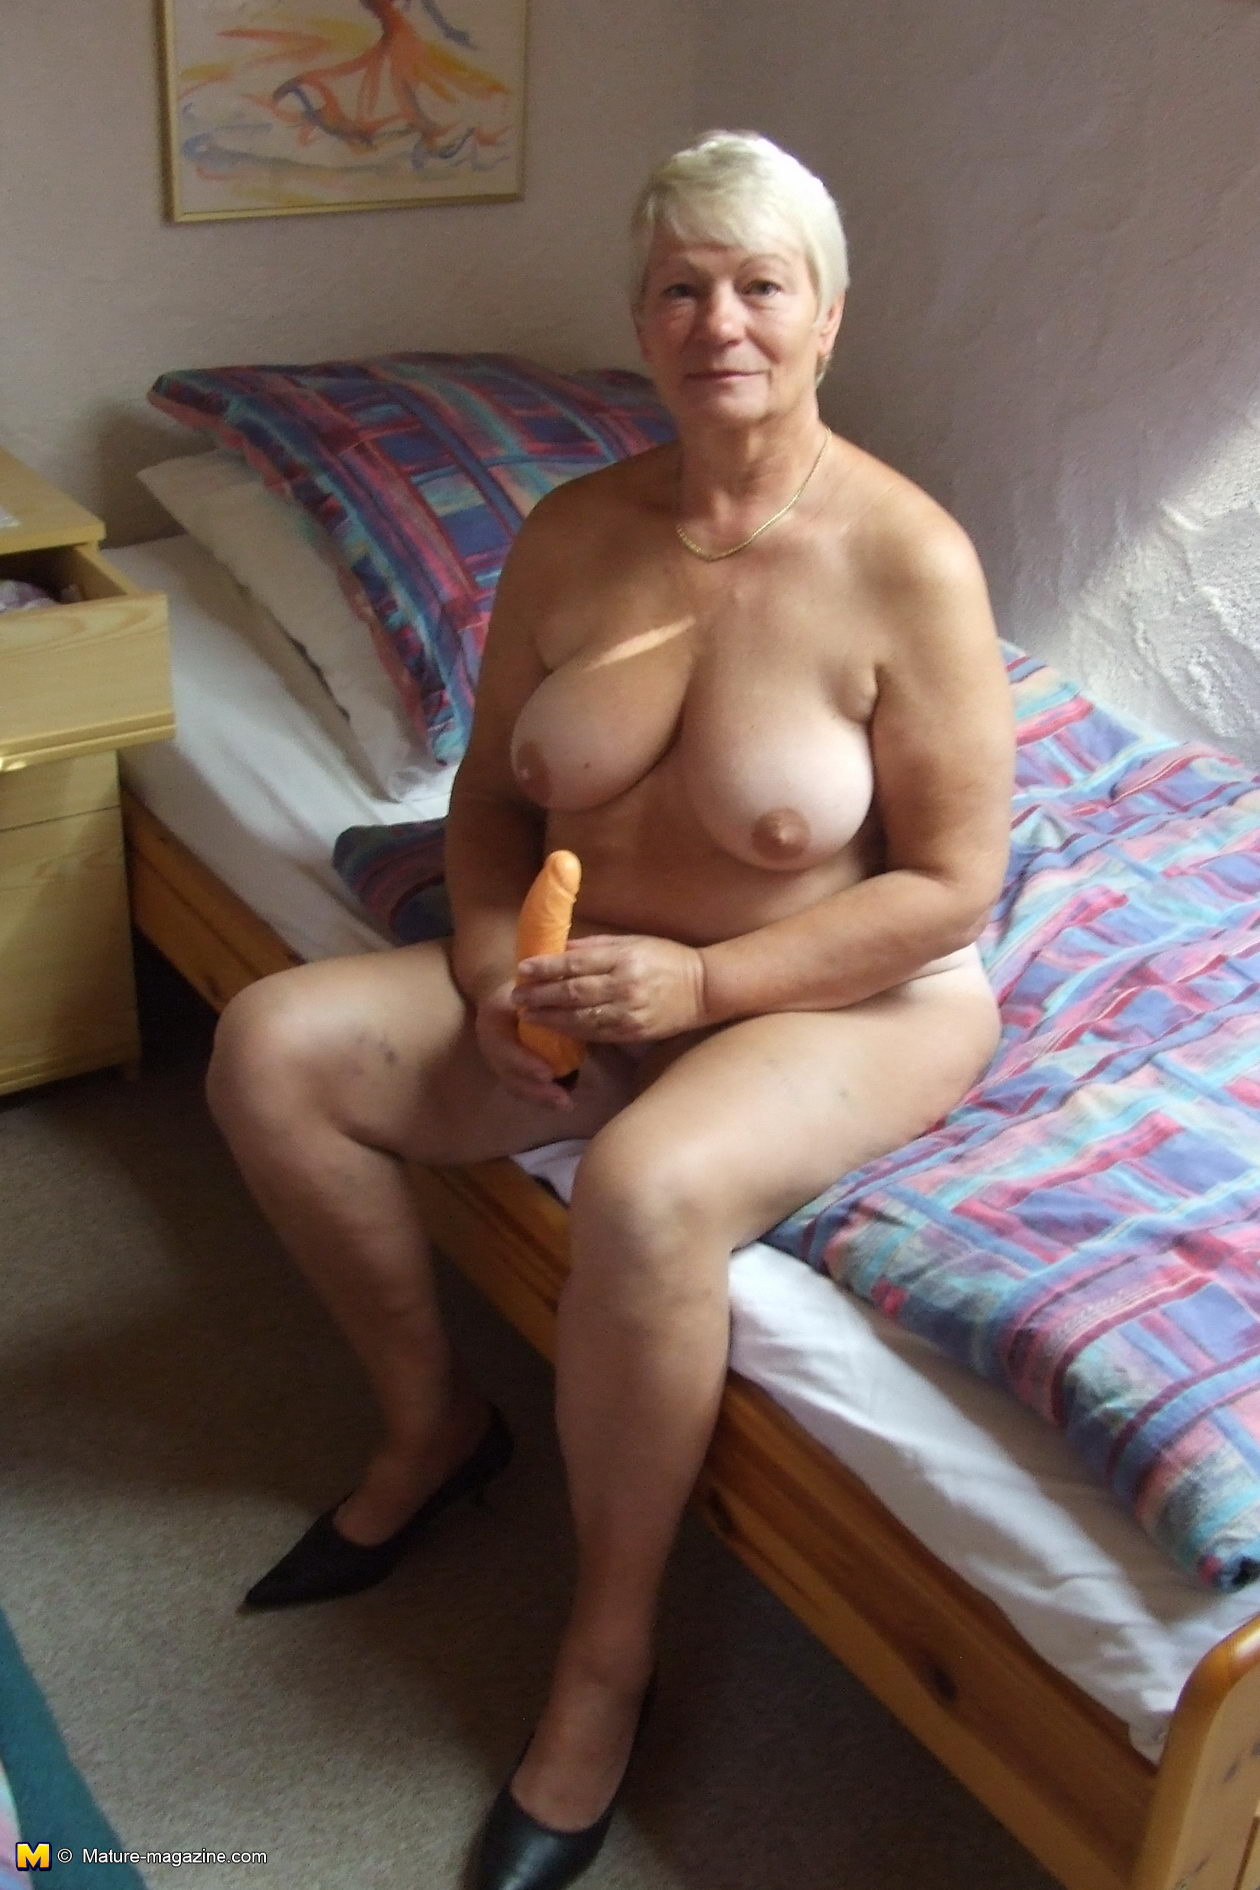 Slut with short hair sucks cock 3